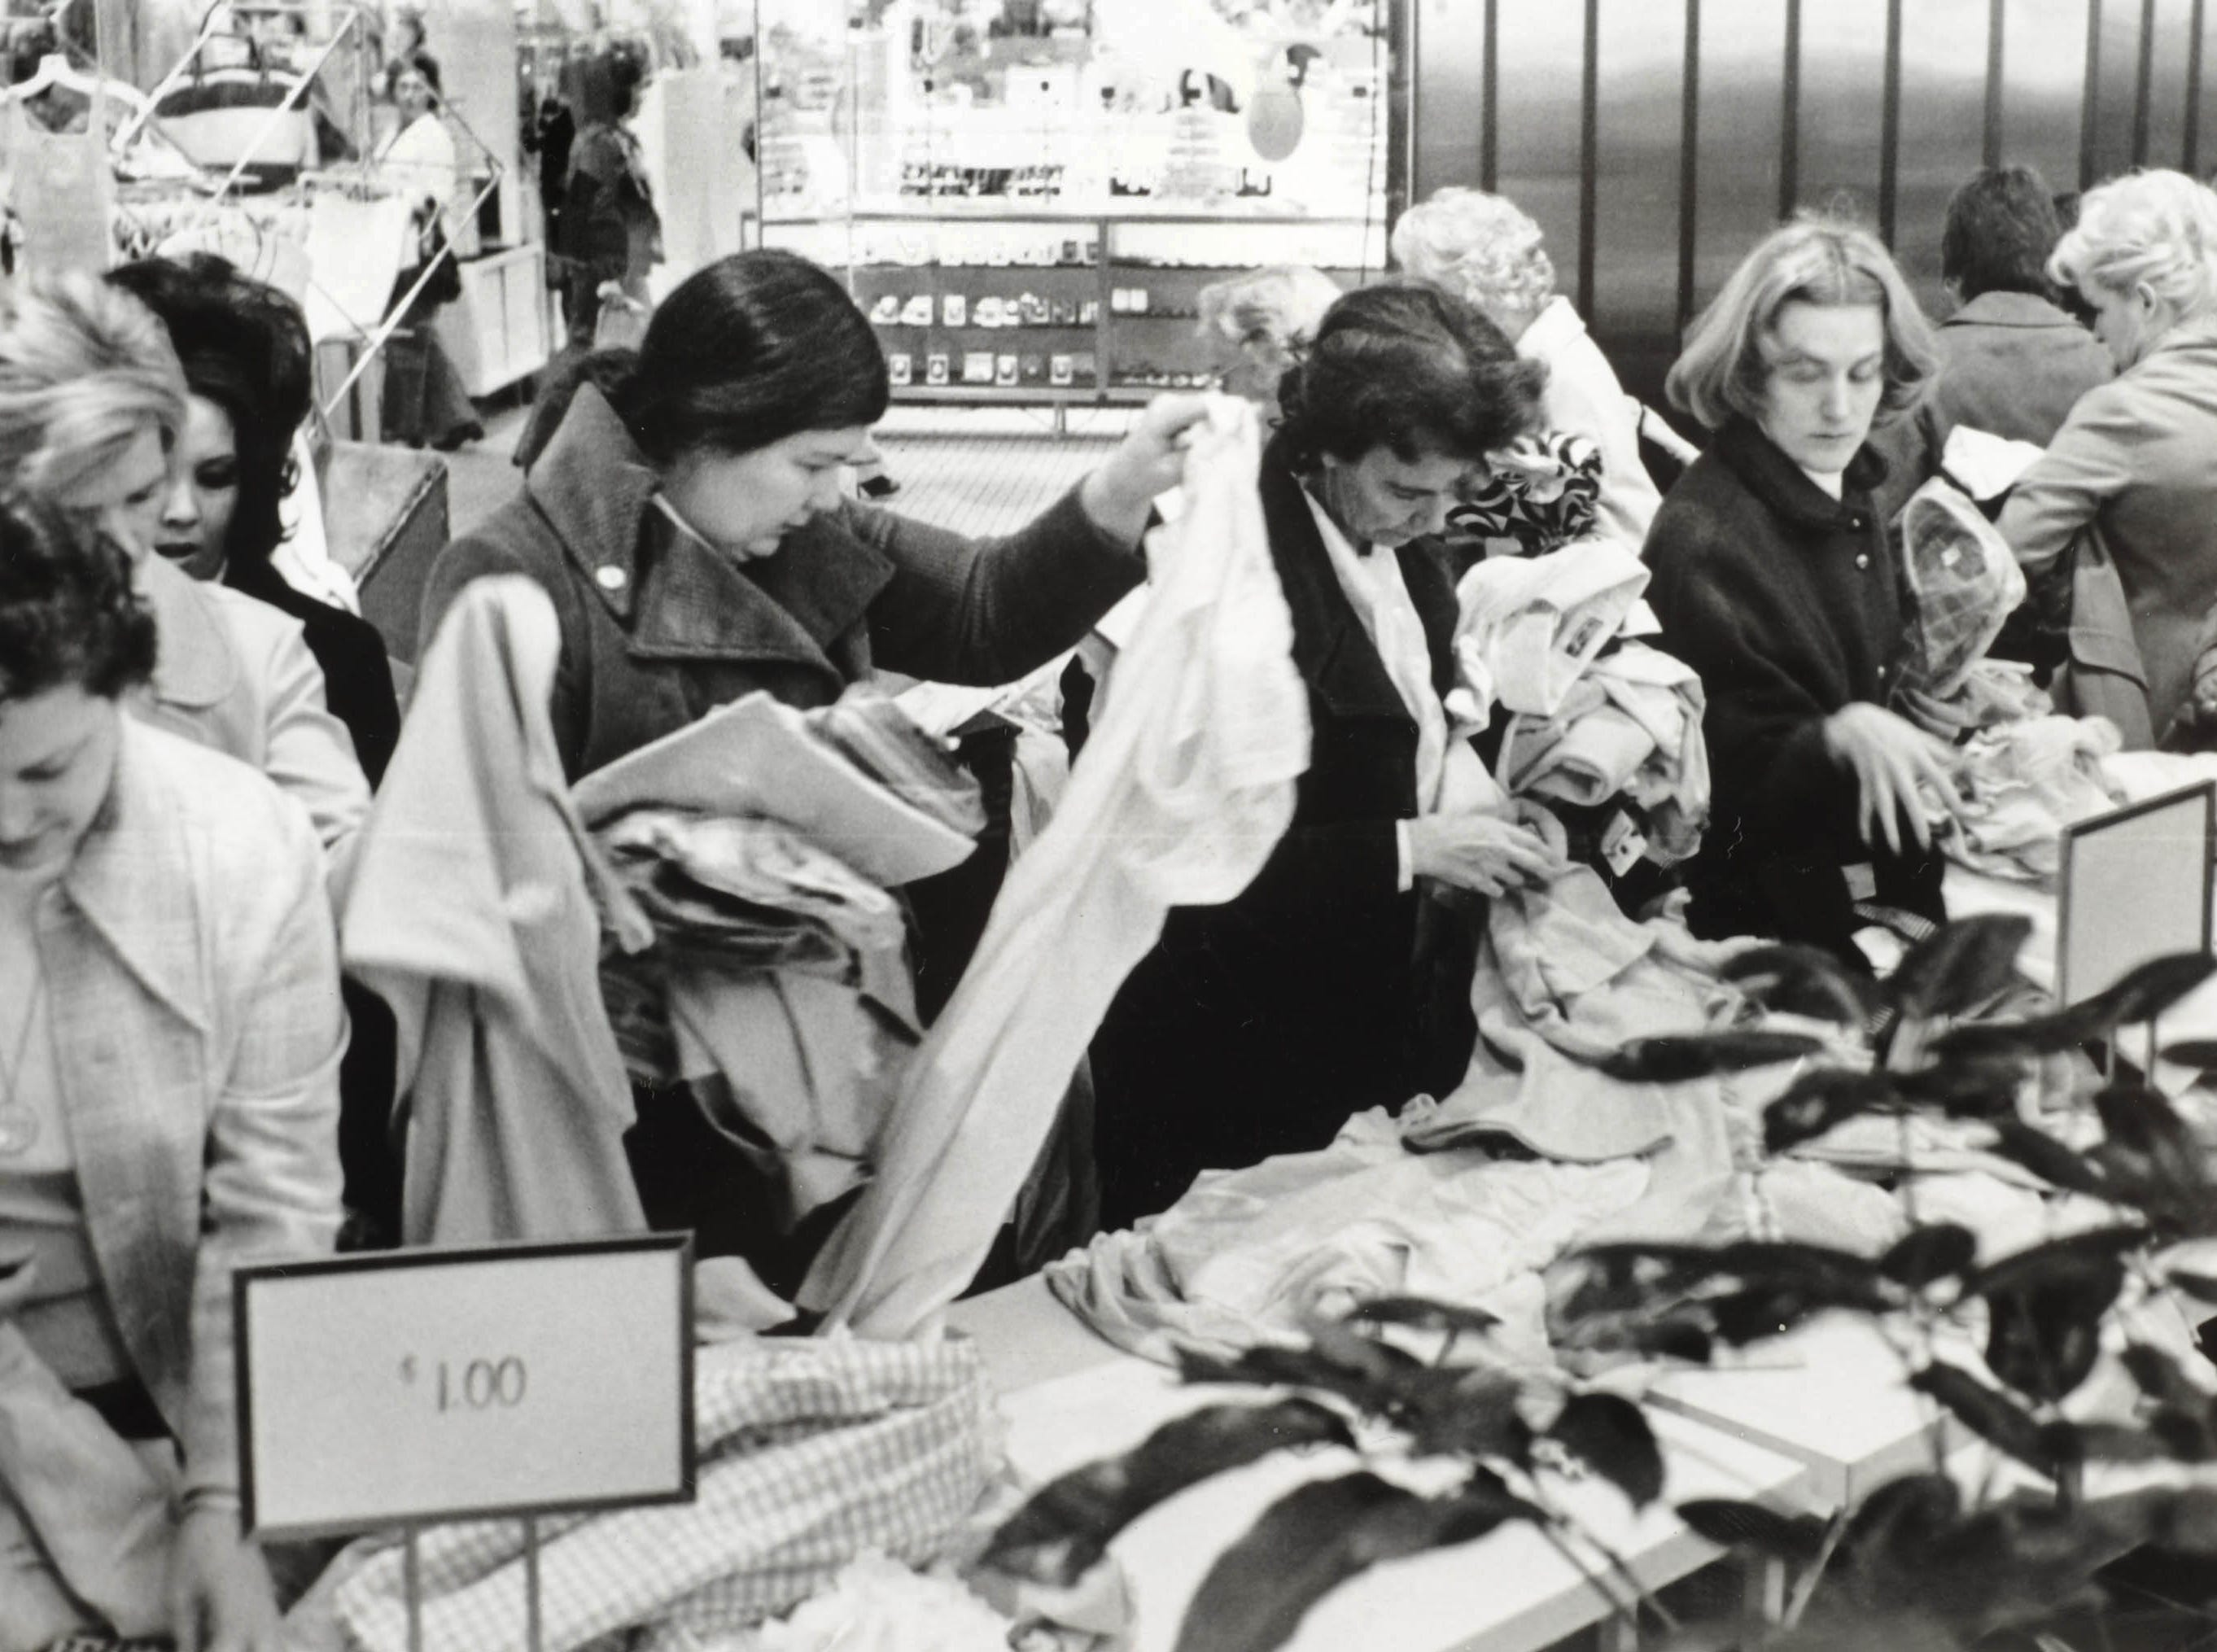 "In an Jan. 16, 1975, photograph, shoppers crowd a sales table at West Town Mall. ""It was every gal for herself at the $1 table at West Town's Sidewalk Sale as January bargain hunters converged on the Mall at door-opening time,"" according to the News-Sentinel's caption for the photo. (KNS Archive)"